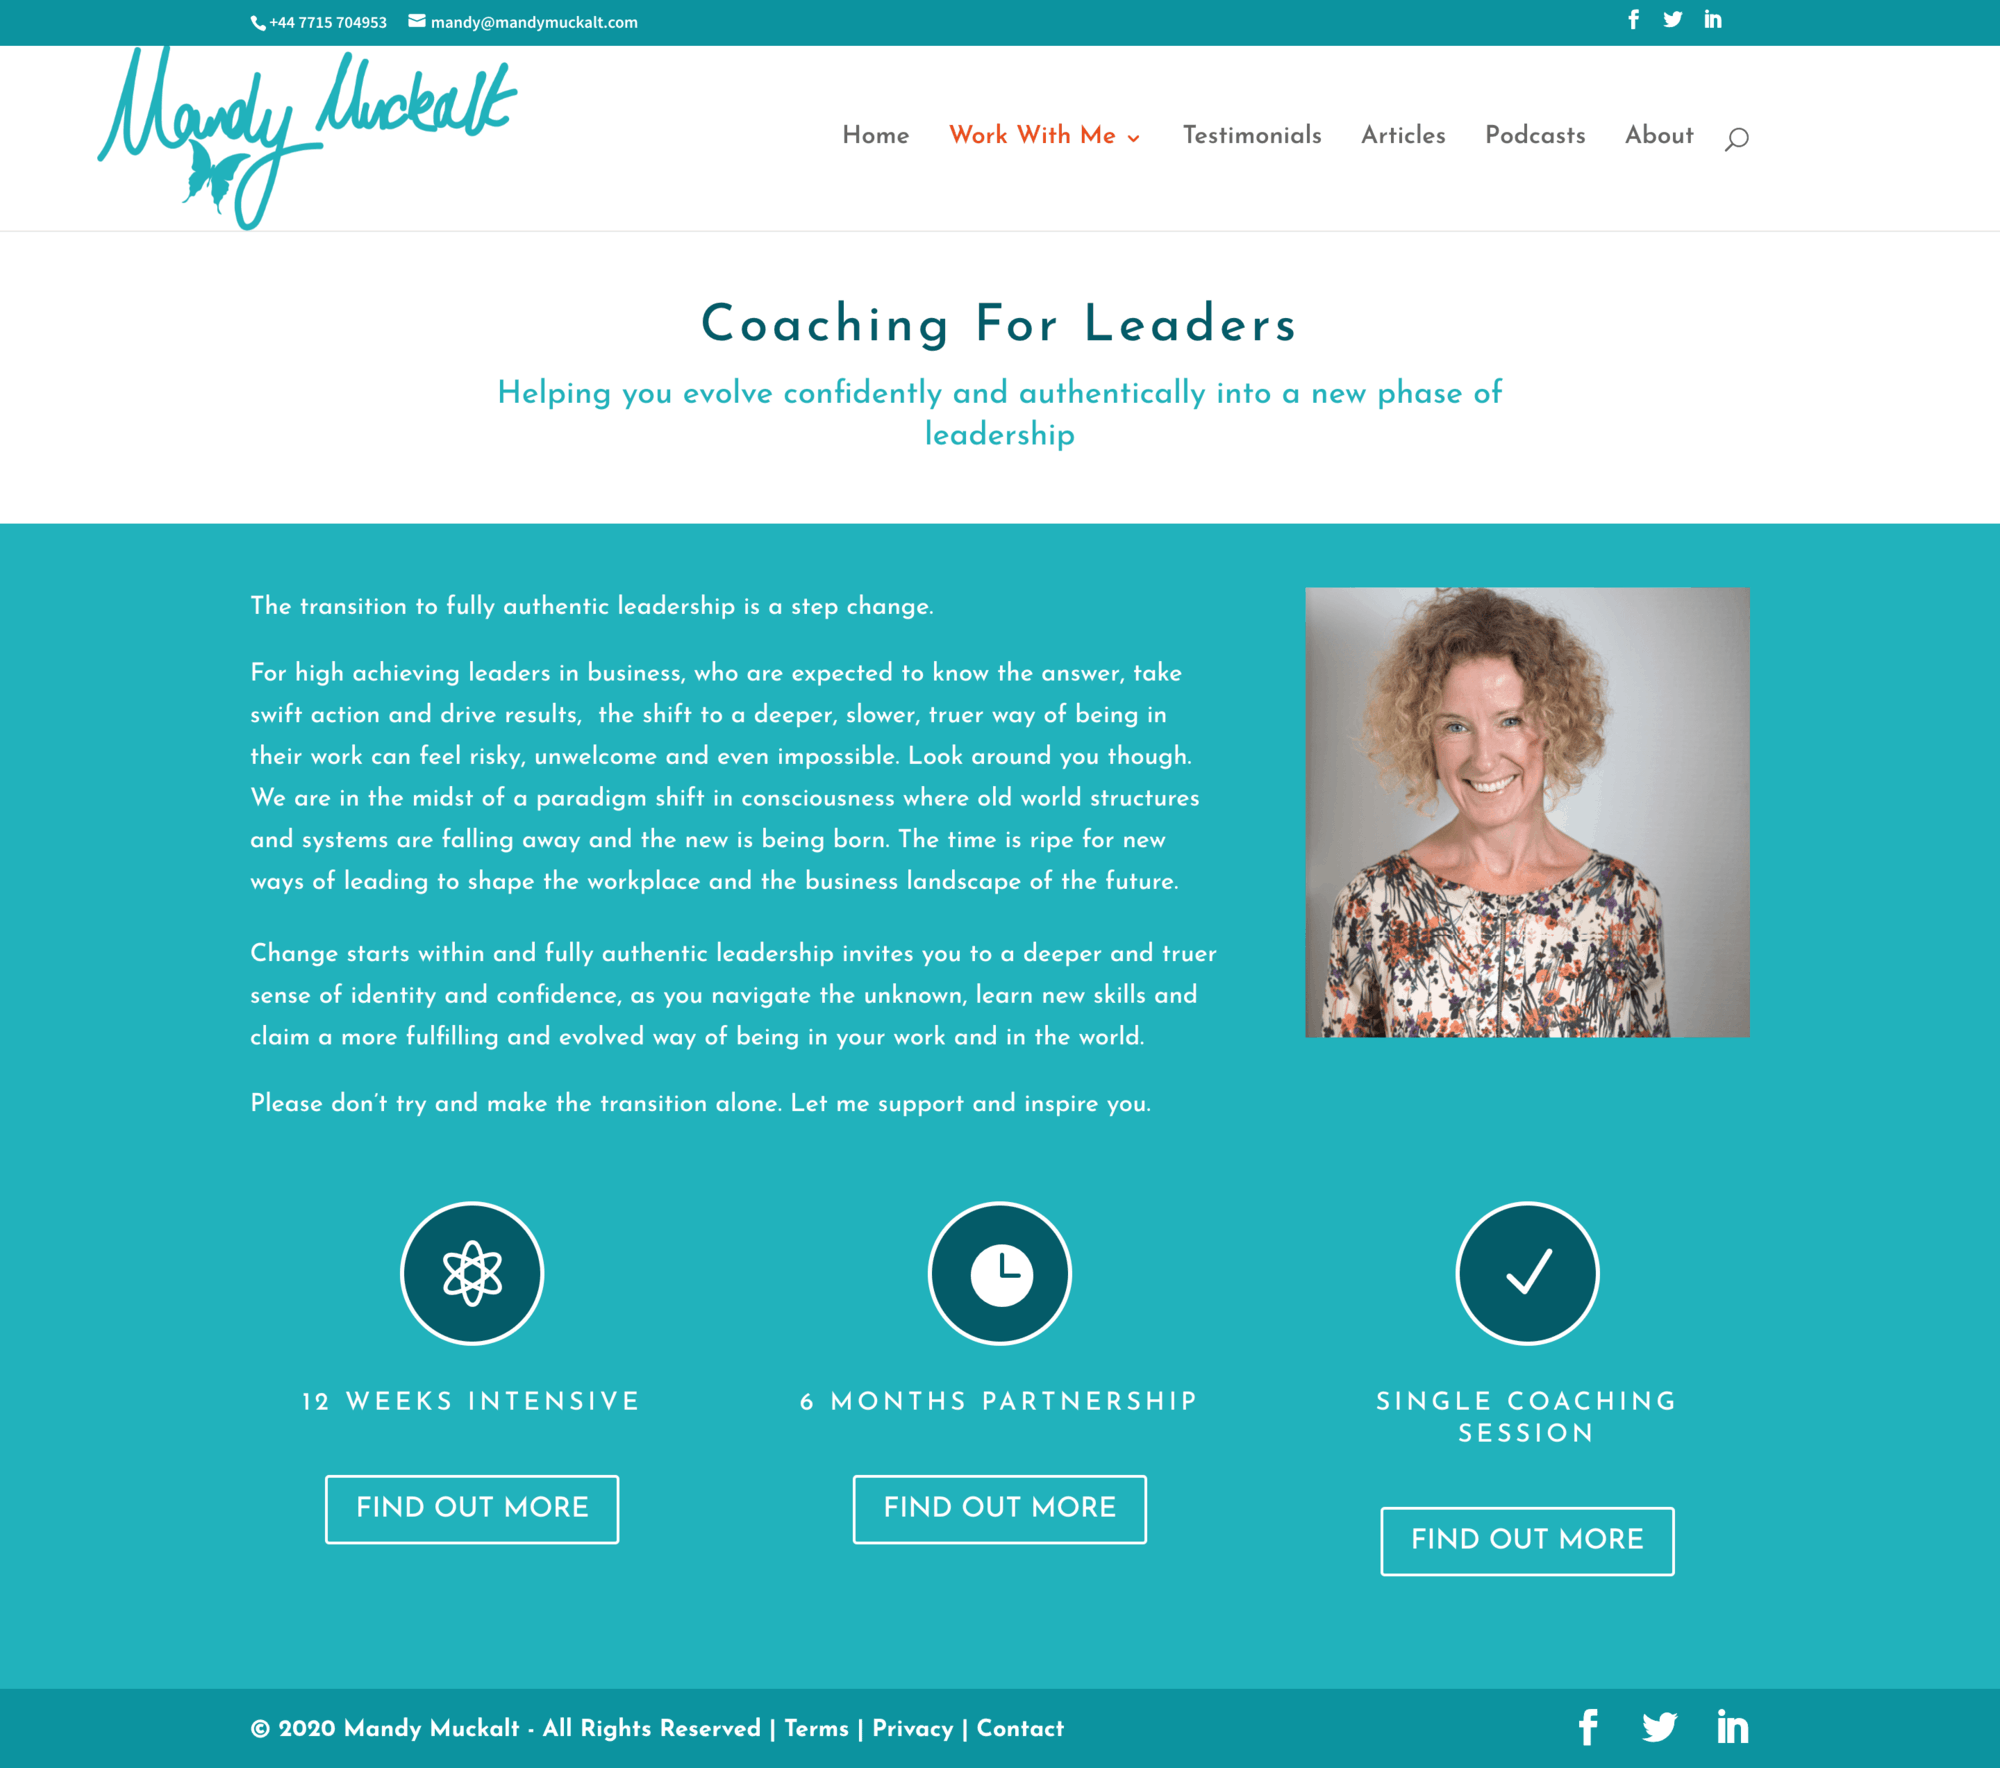 Mandy's website - Work with me